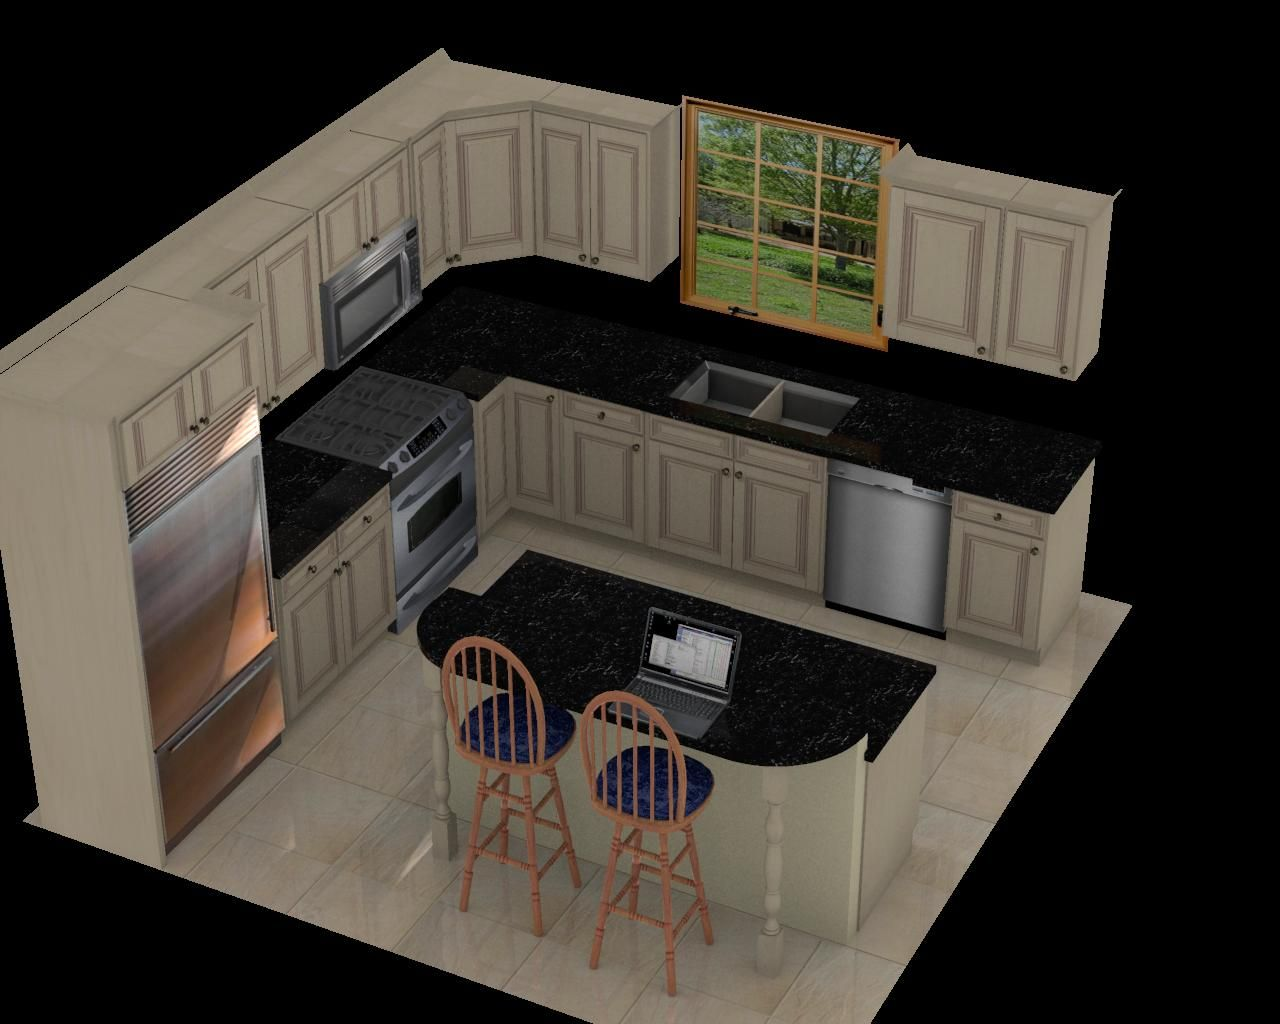 Luxury 12x12 Kitchen Layout With Island 51 For with 12x12 ...